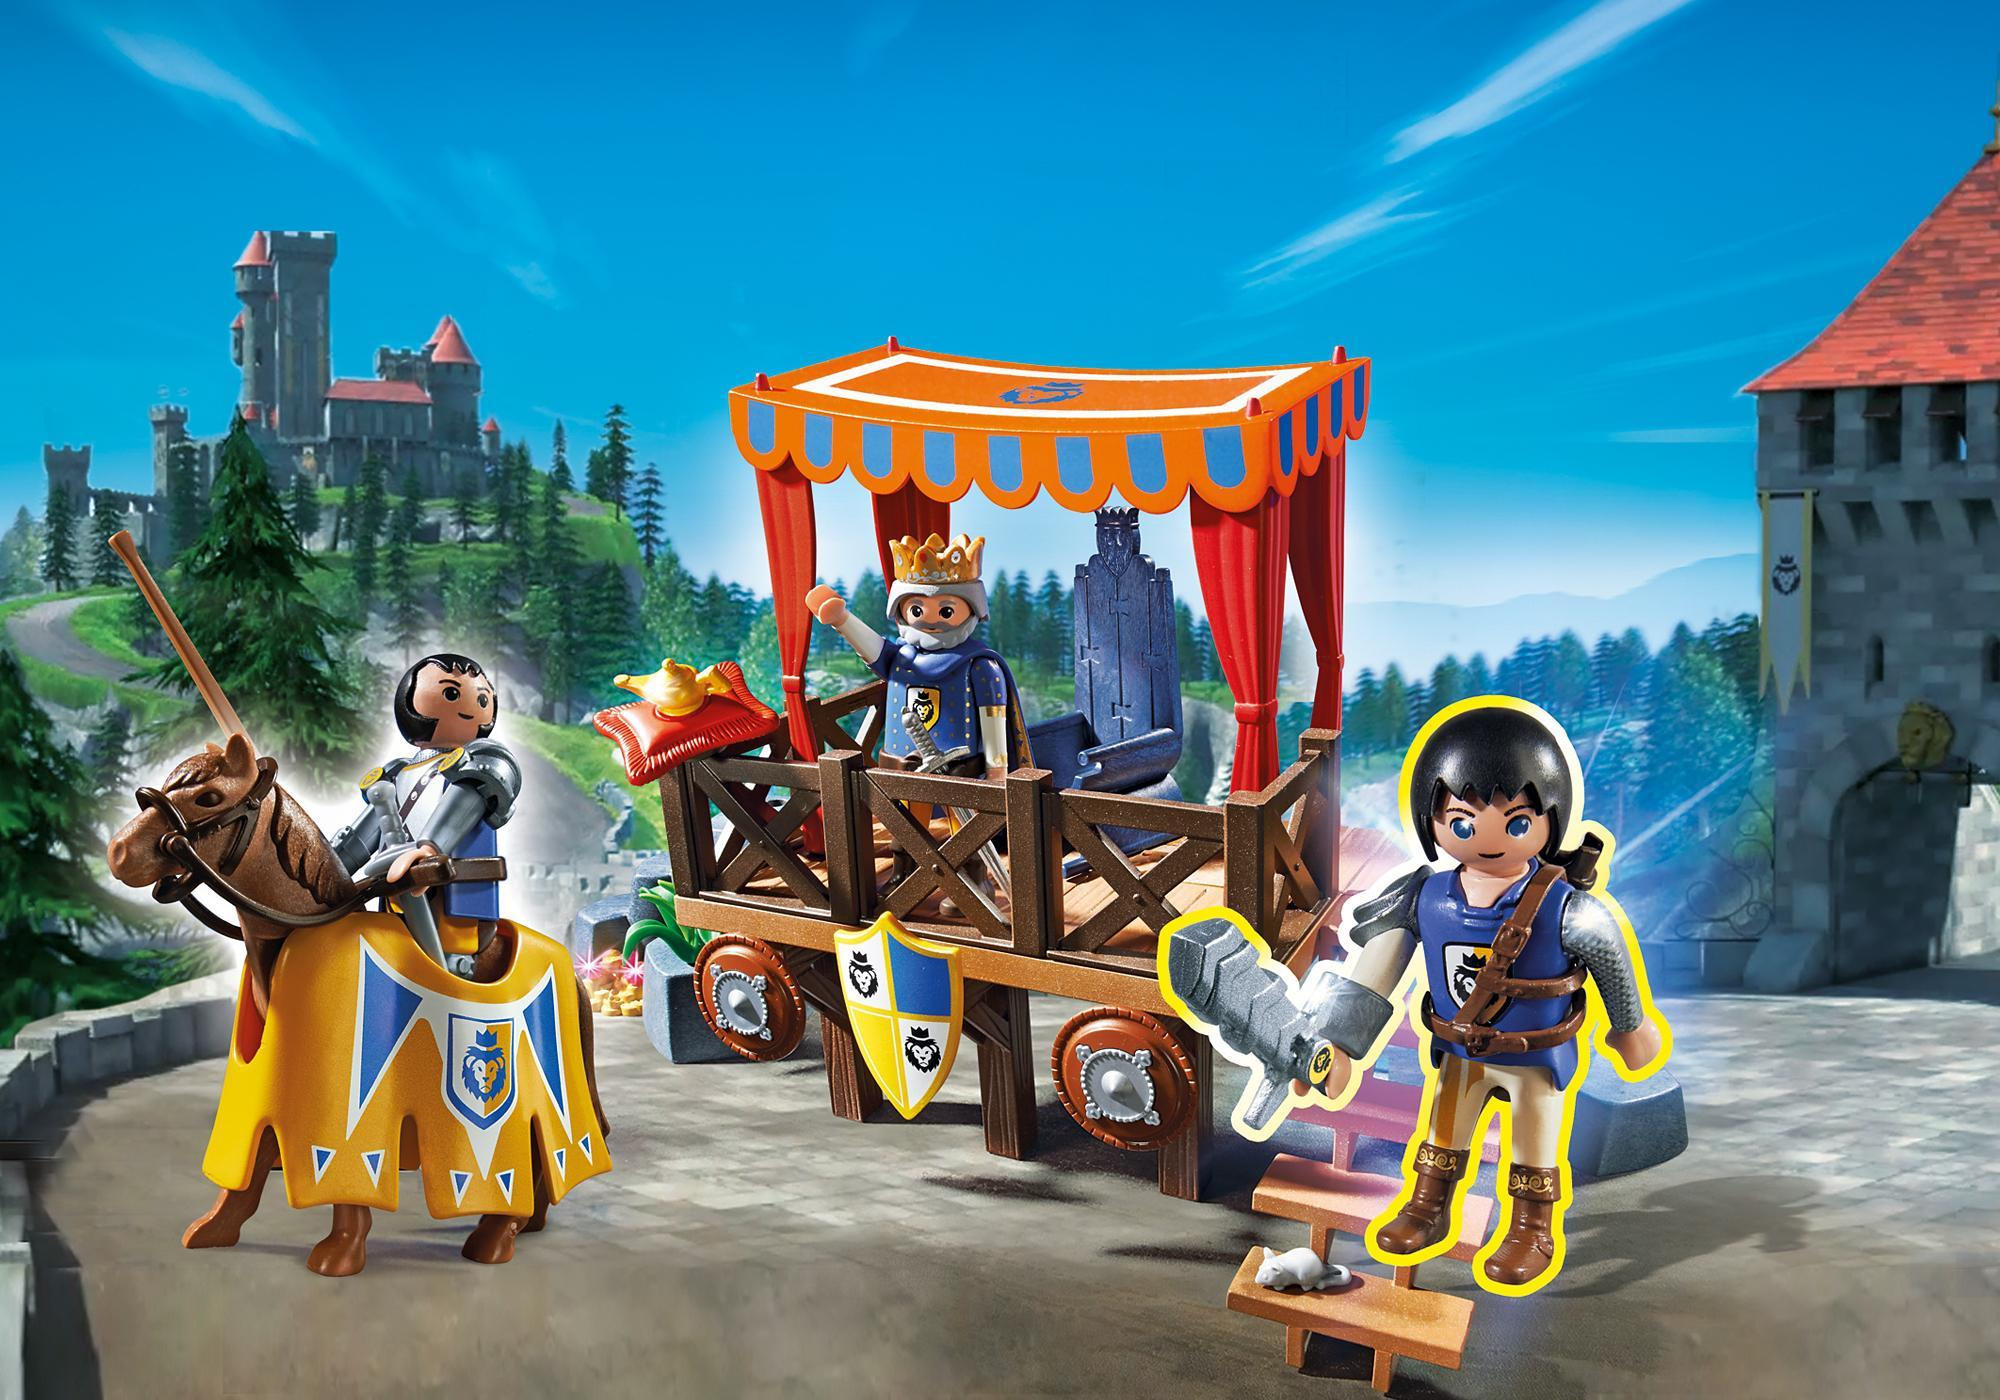 http://media.playmobil.com/i/playmobil/6695_product_detail